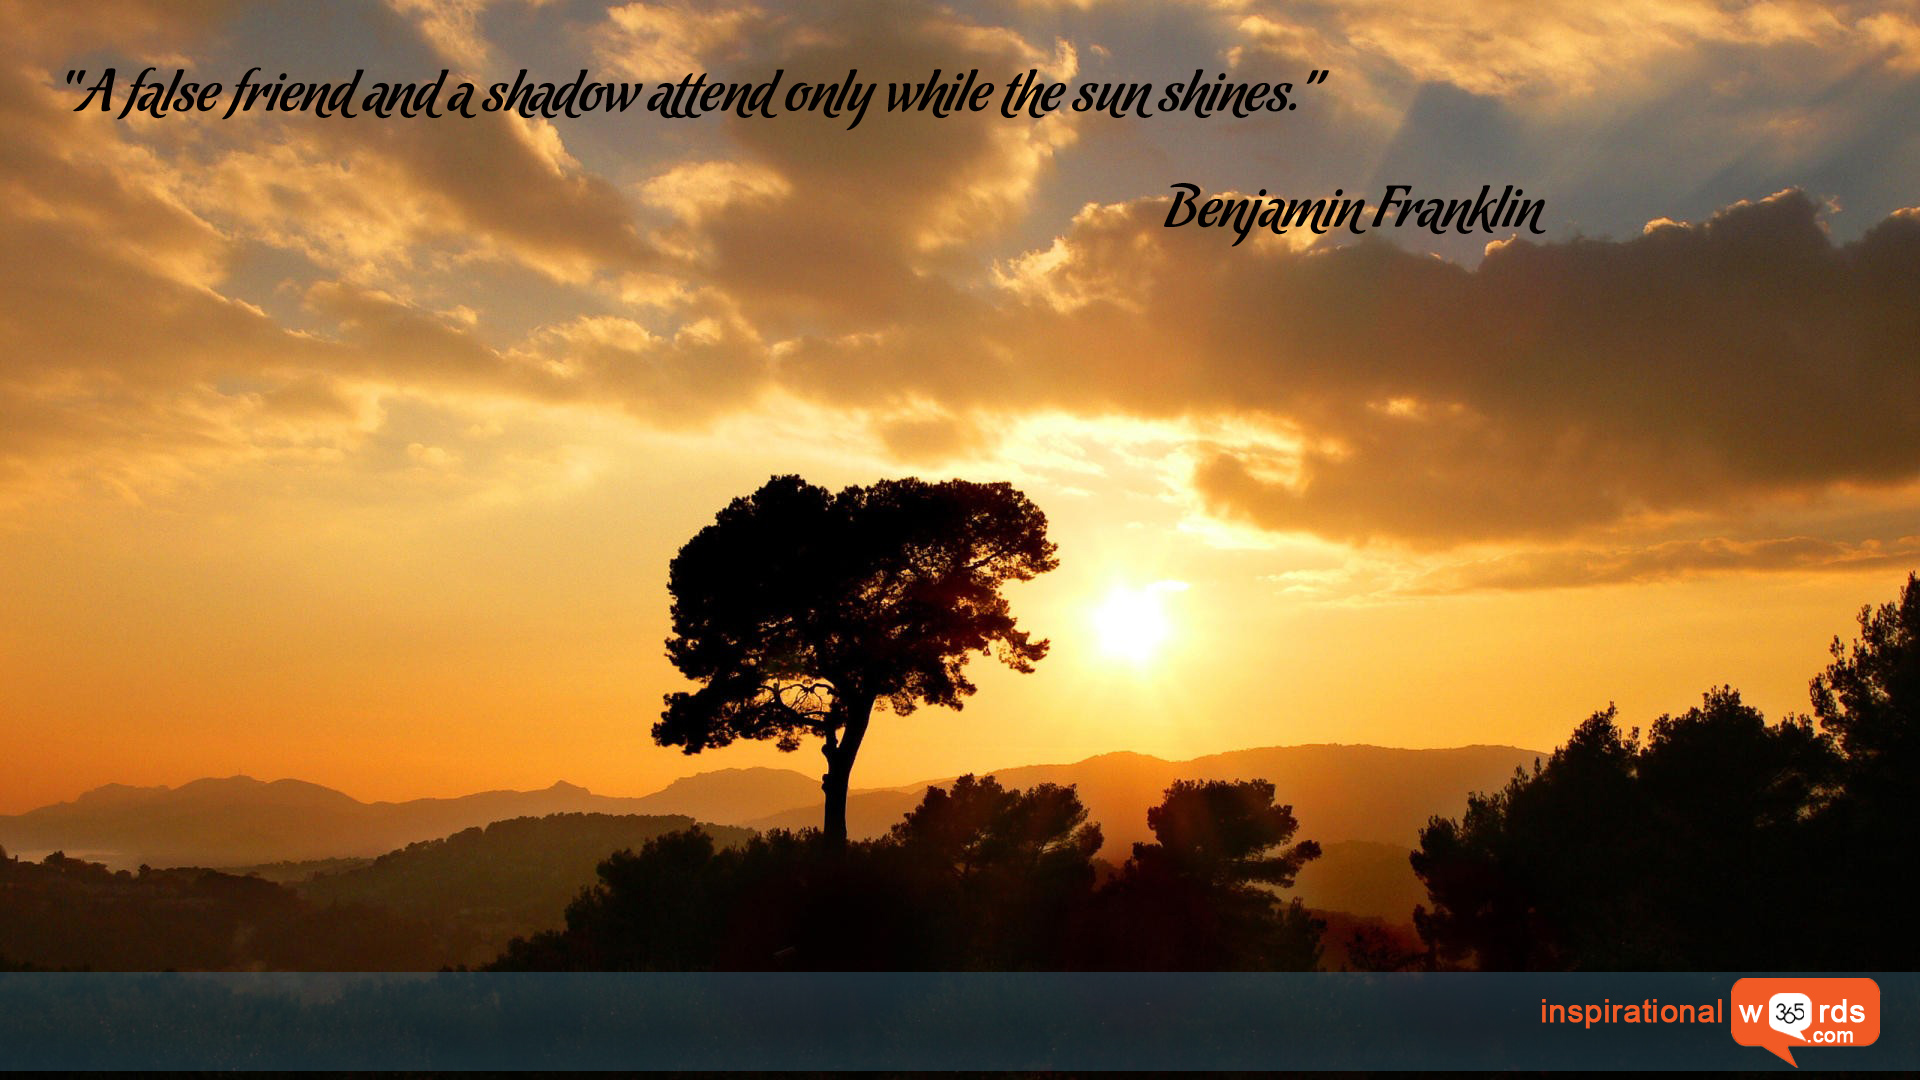 Inspirational Wallpaper Quote by Benjamin Franklin